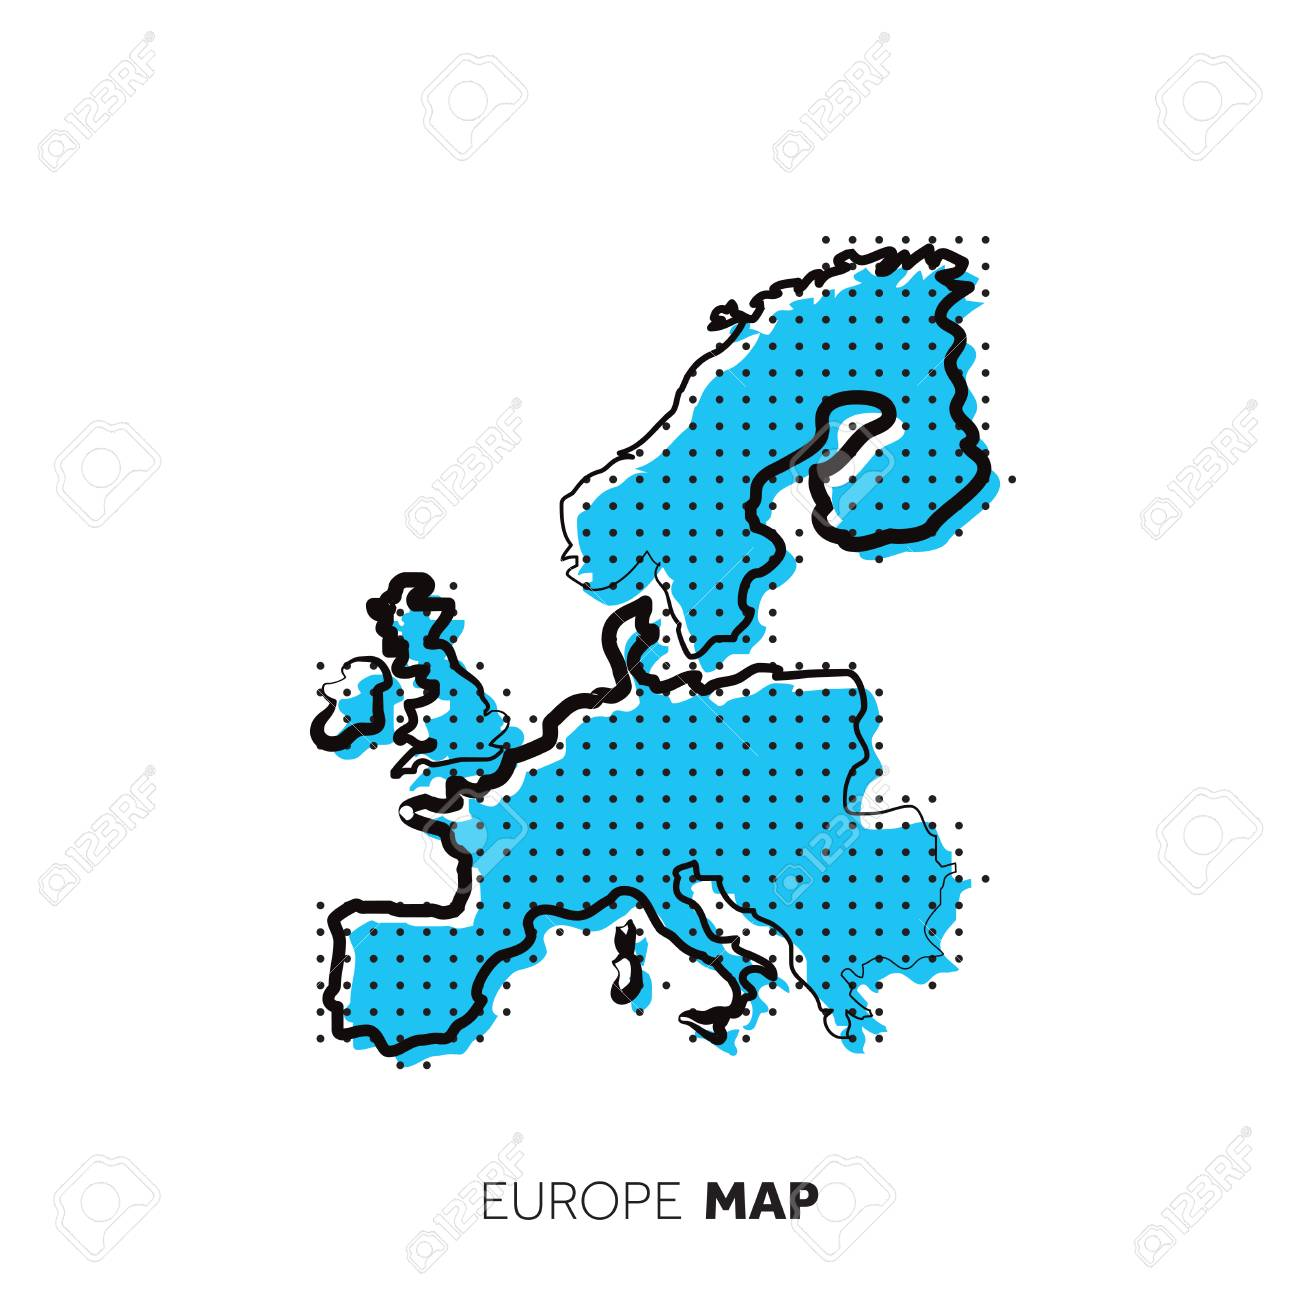 Picture of: Europe Vector Country Map Map Outline With Dots Royalty Free Cliparts Vectors And Stock Illustration Image 114989462